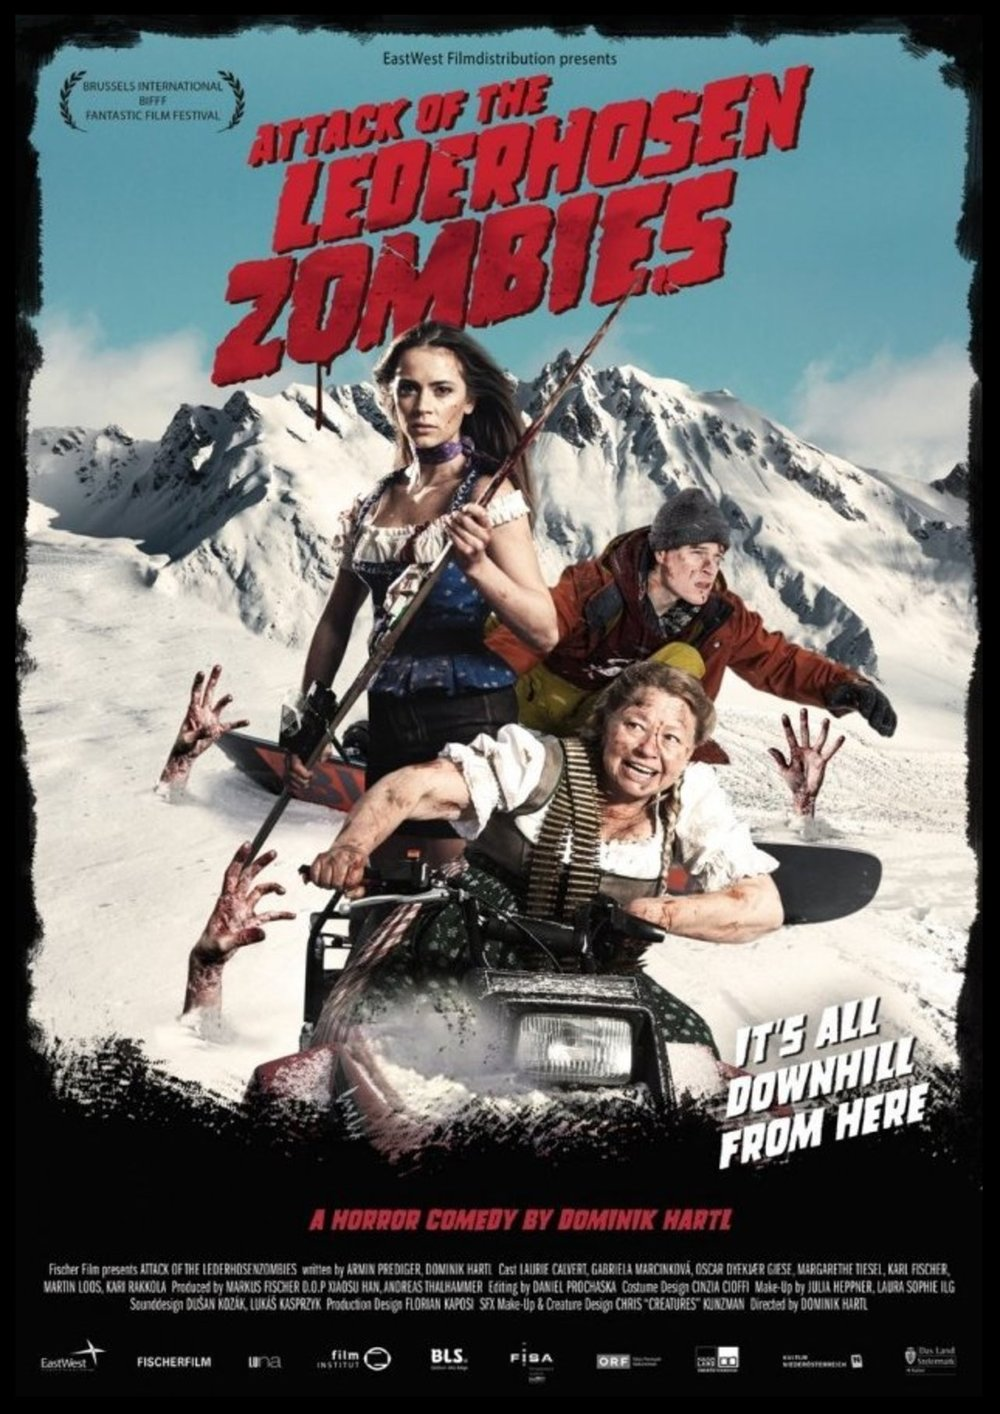 Attack of the Lederhosen Zombies Movie Poster.jpg